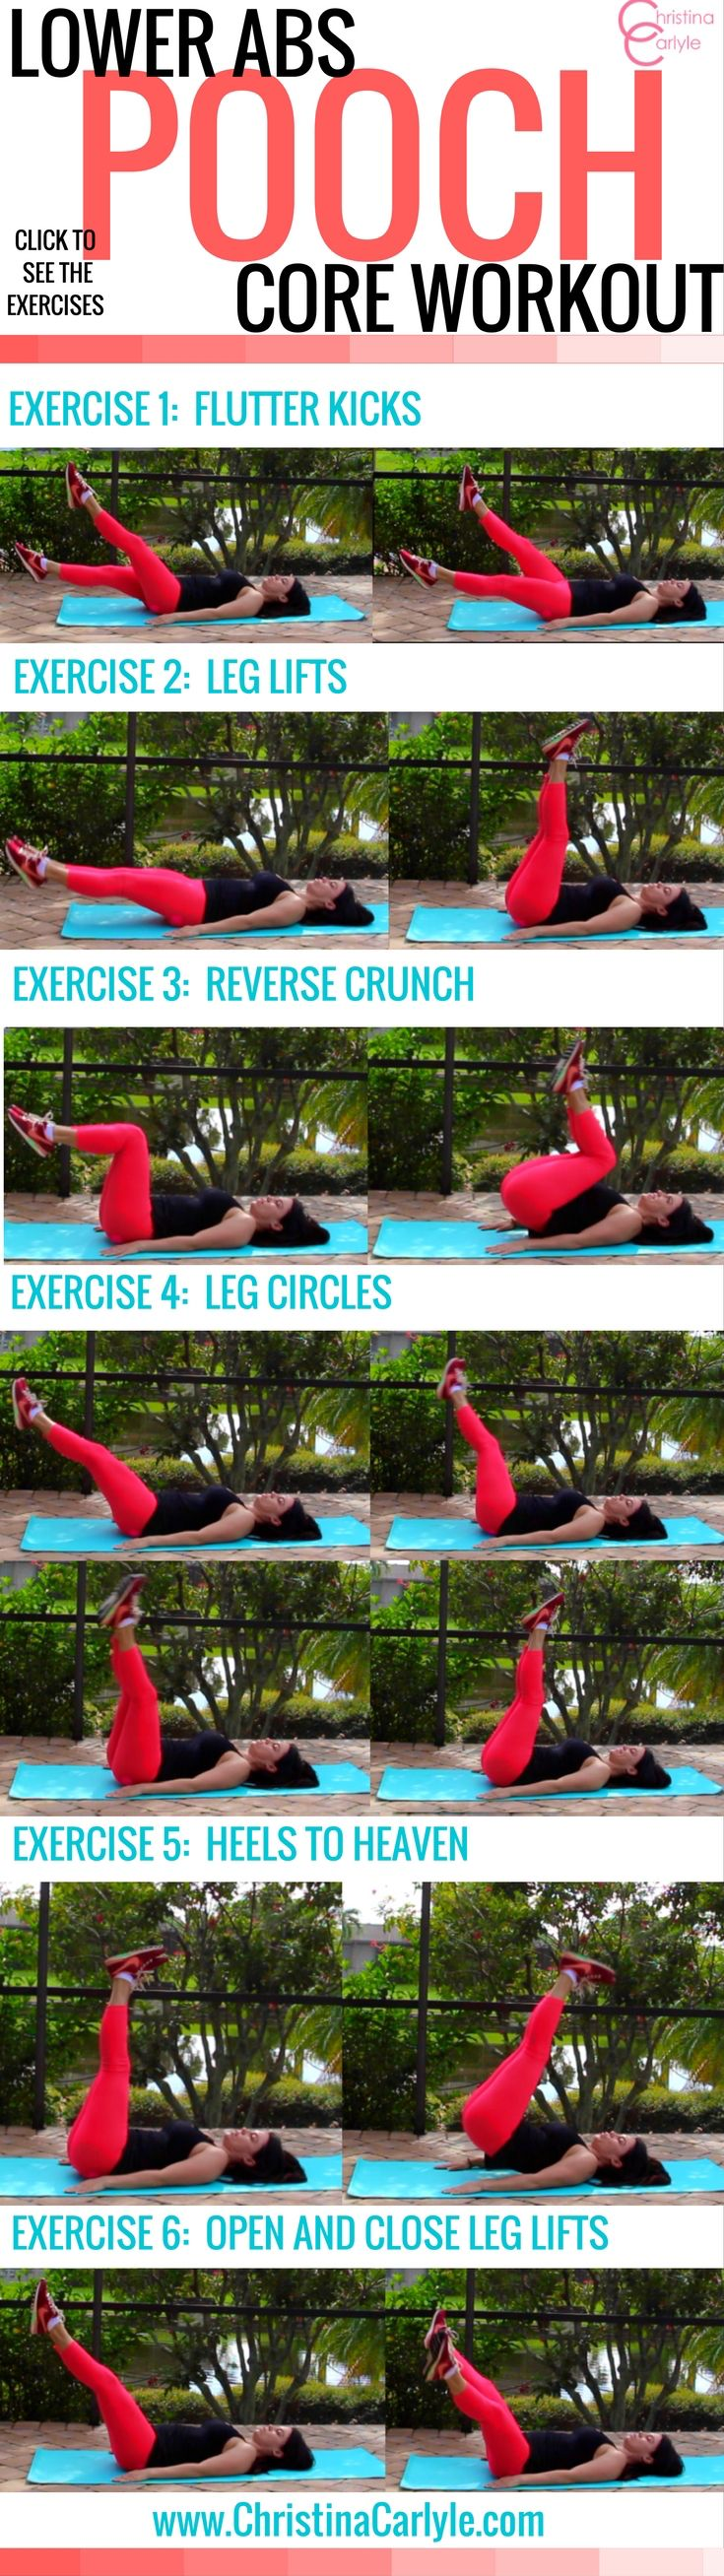 Does your belly pooch bother you? Learn how to exercise your lower abs and get a Lower Ab Workout for women from Trainer Christina Carlyle.